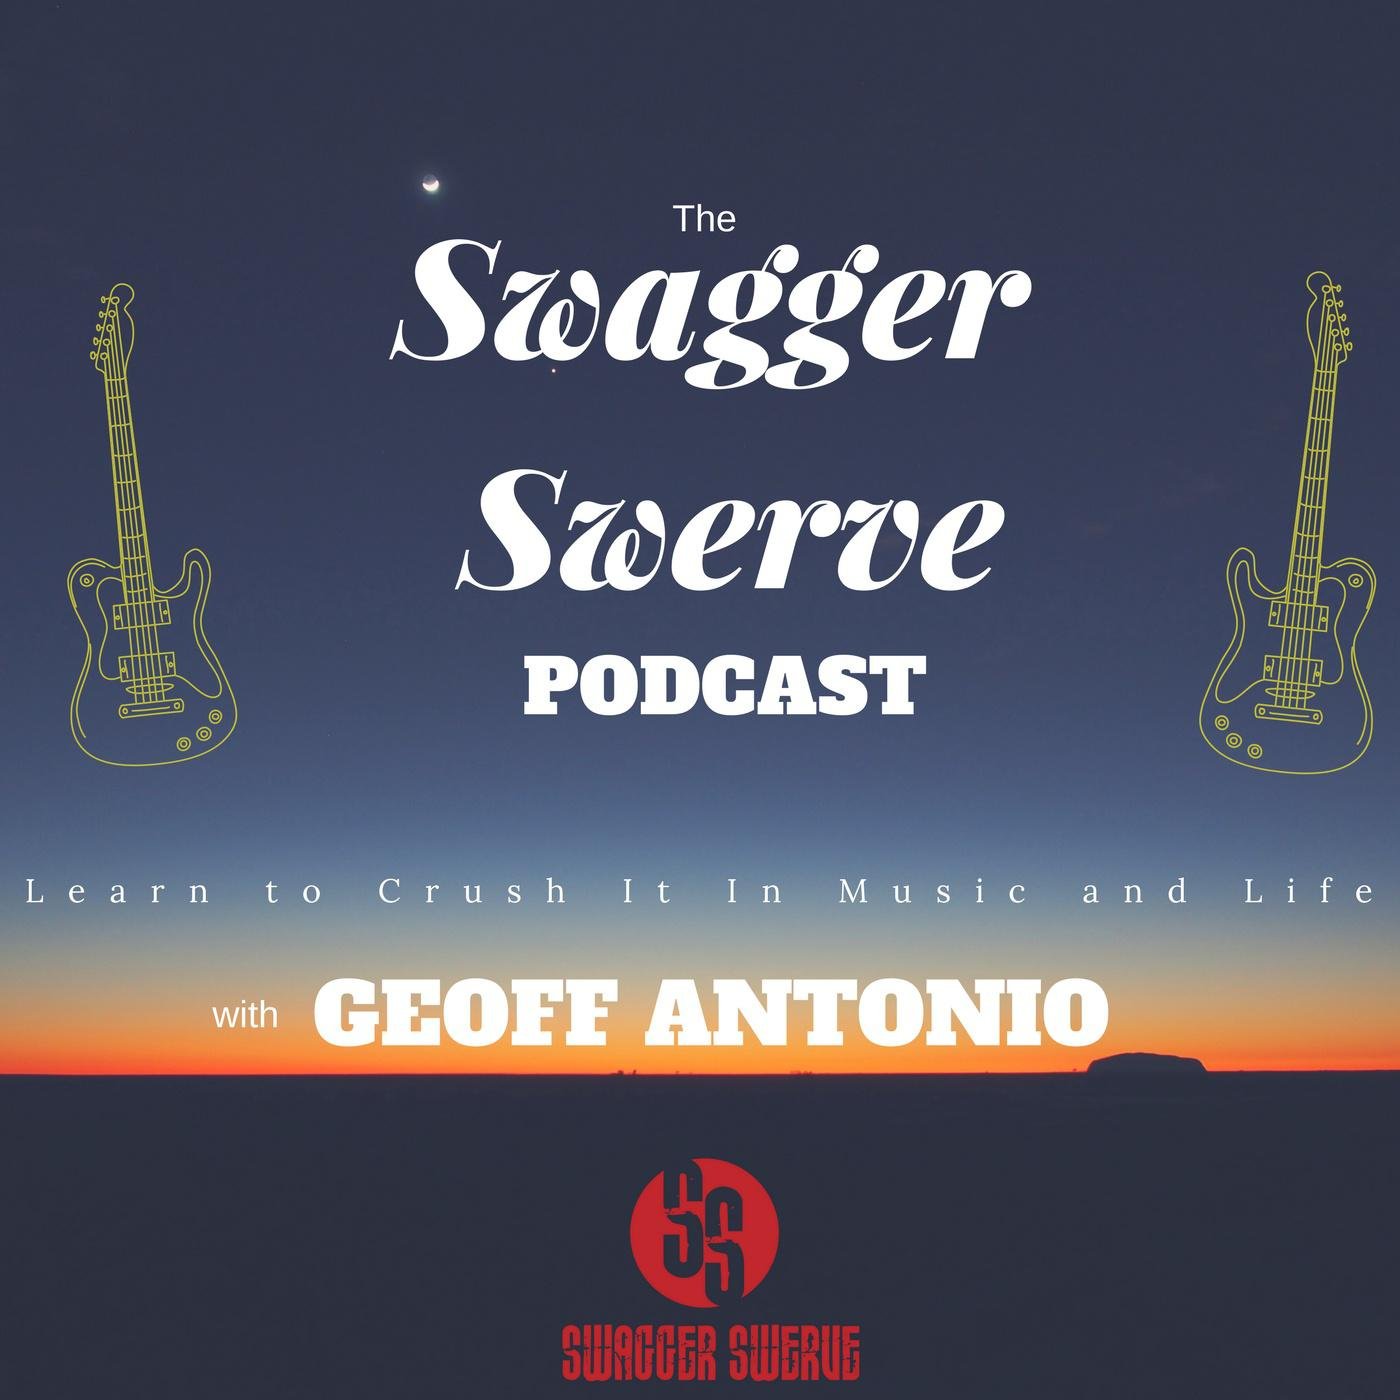 Swagger Swerve (podcast) - Geoff Antonio | Listen Notes